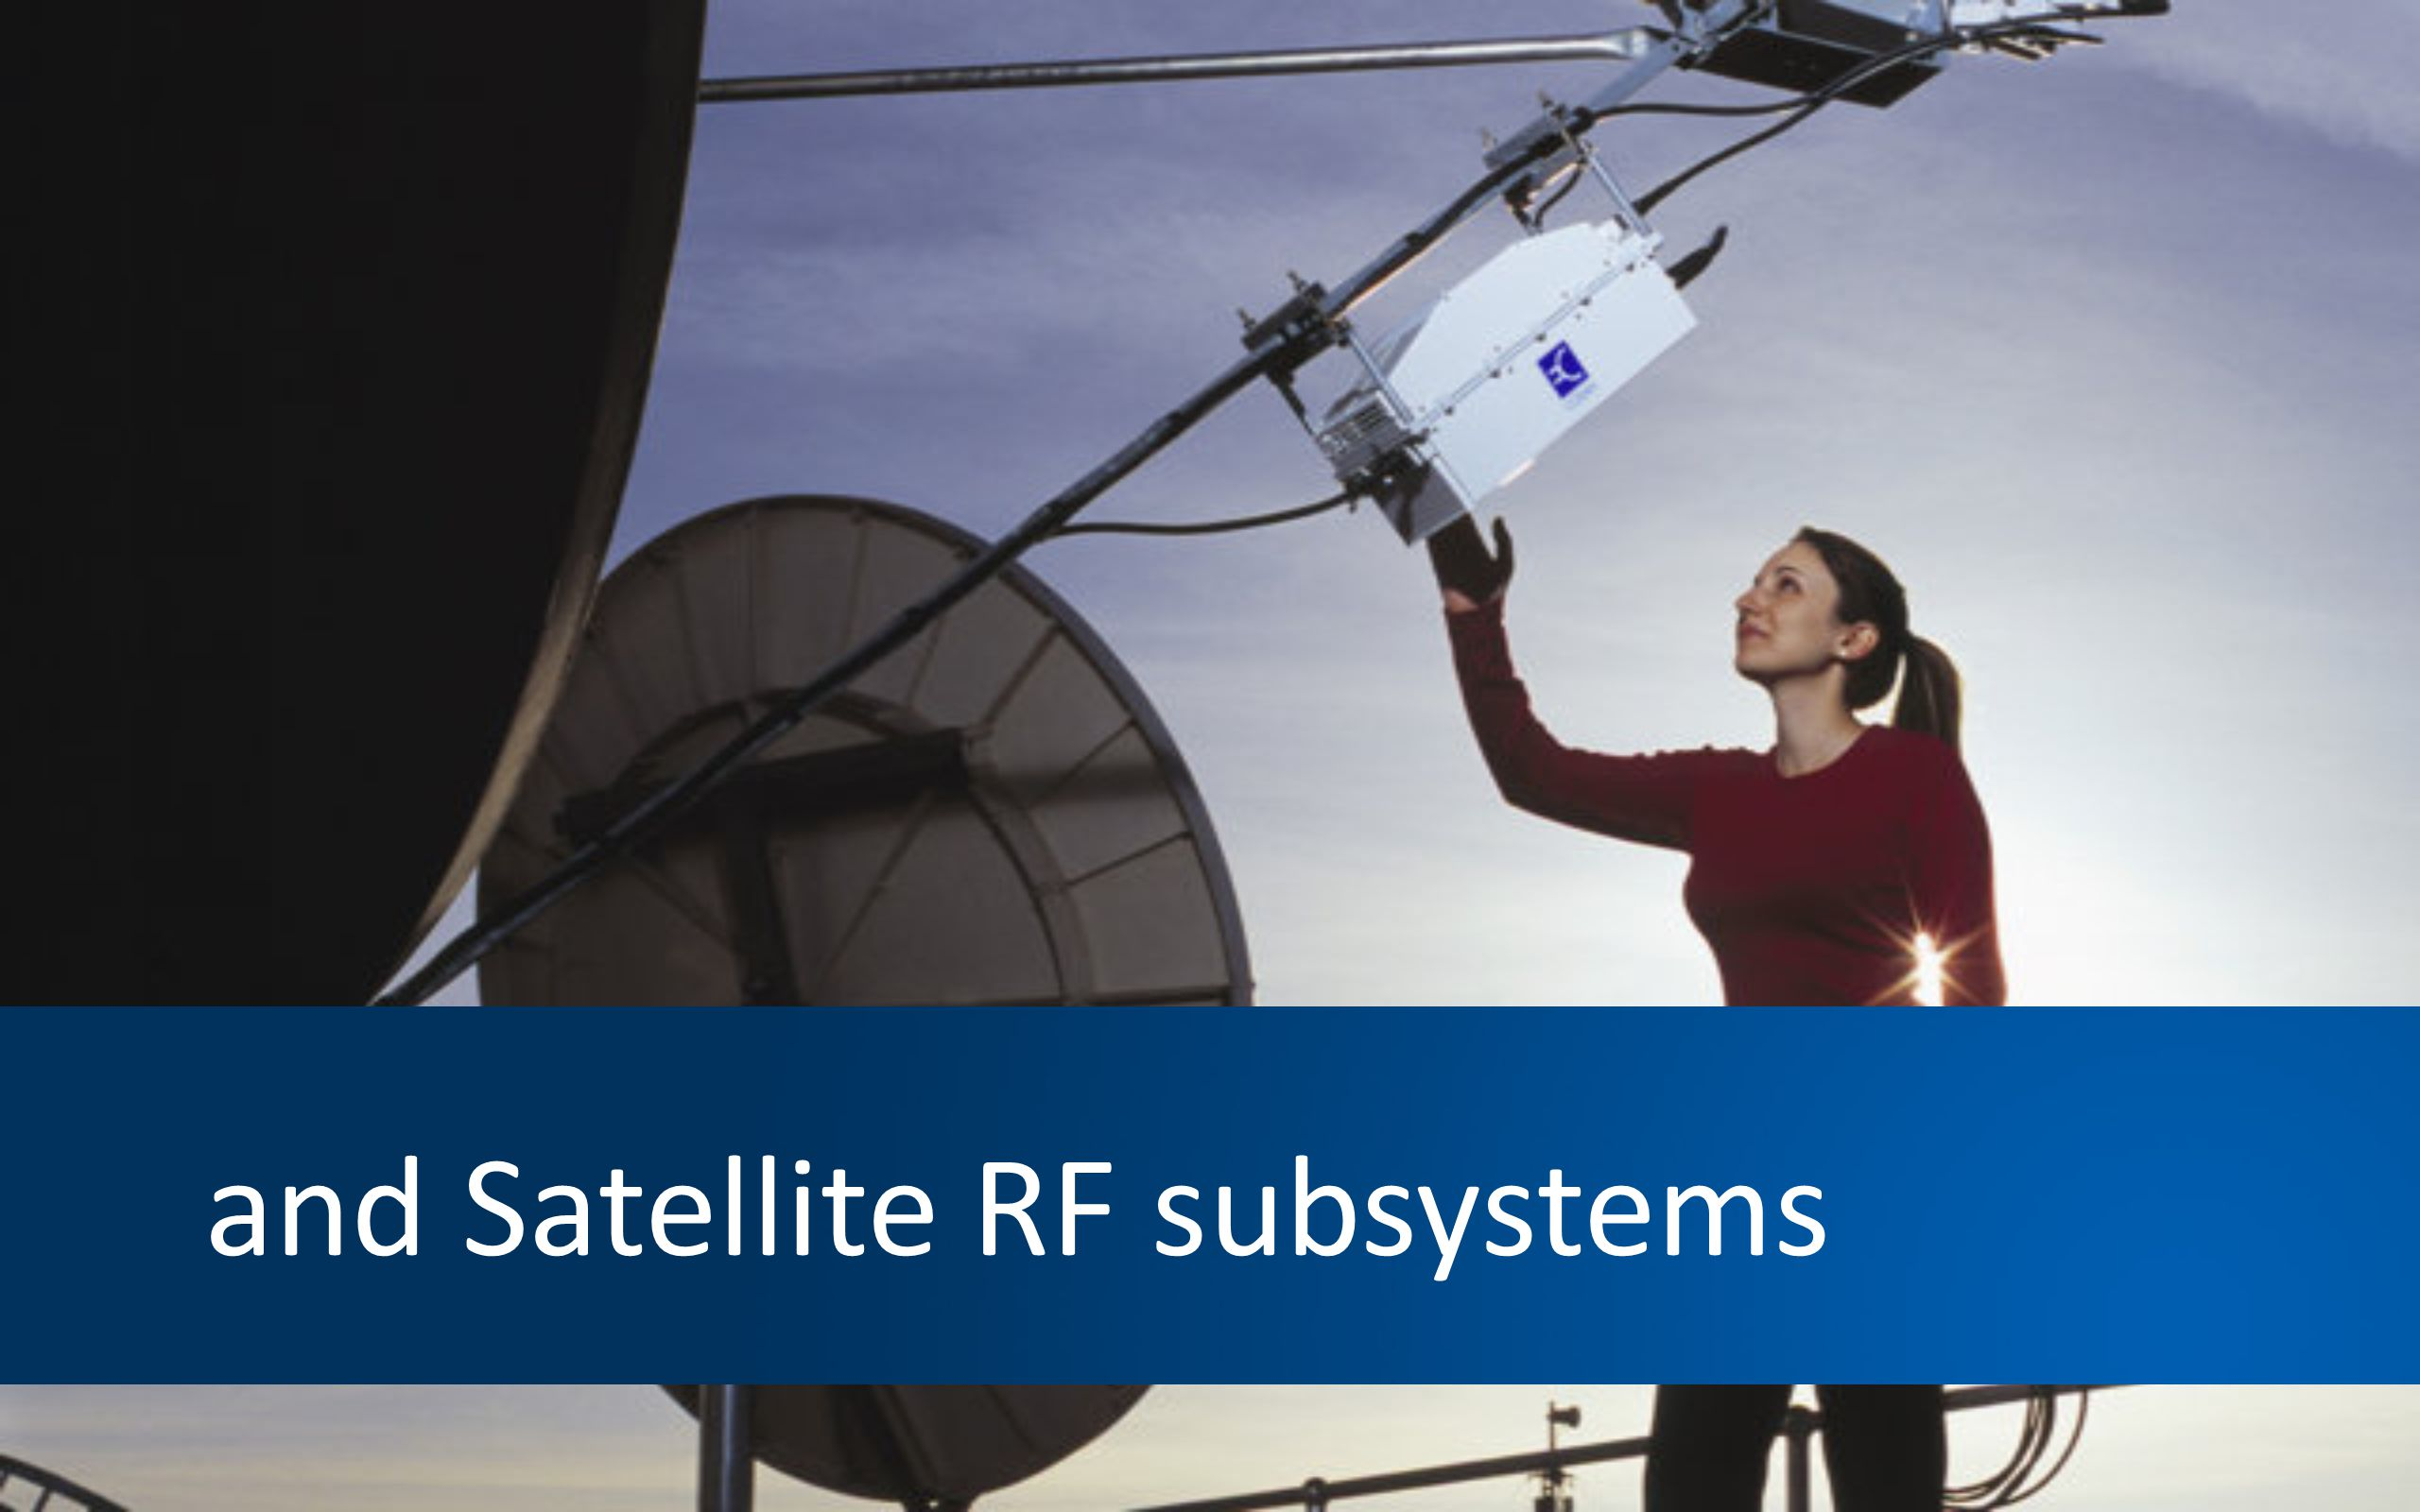 and Satellite RF subsystems